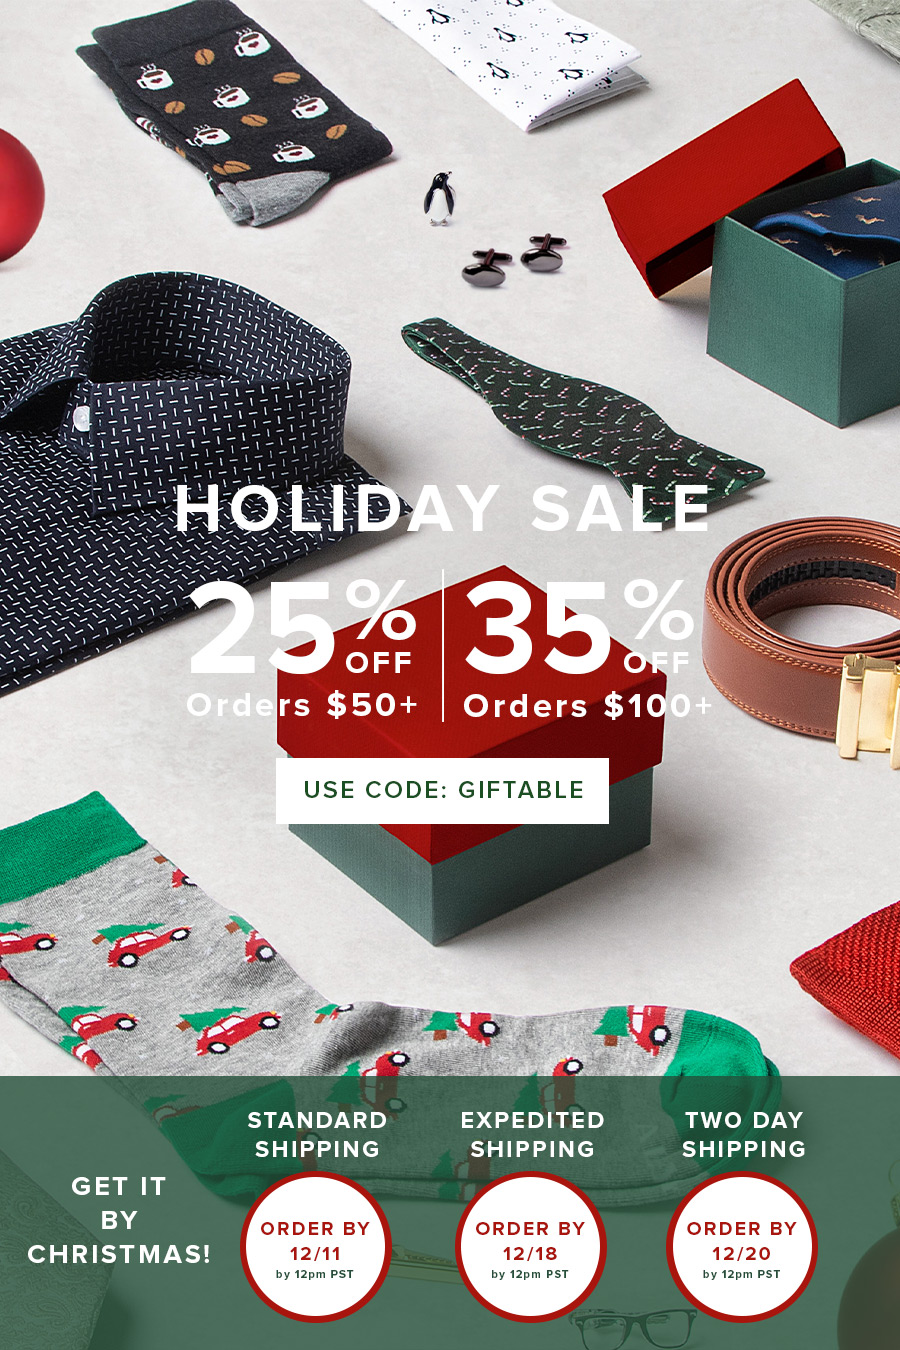 Take 25% Off Orders $50+, 35% Off Orders $100+ w/ code GIFTABLE